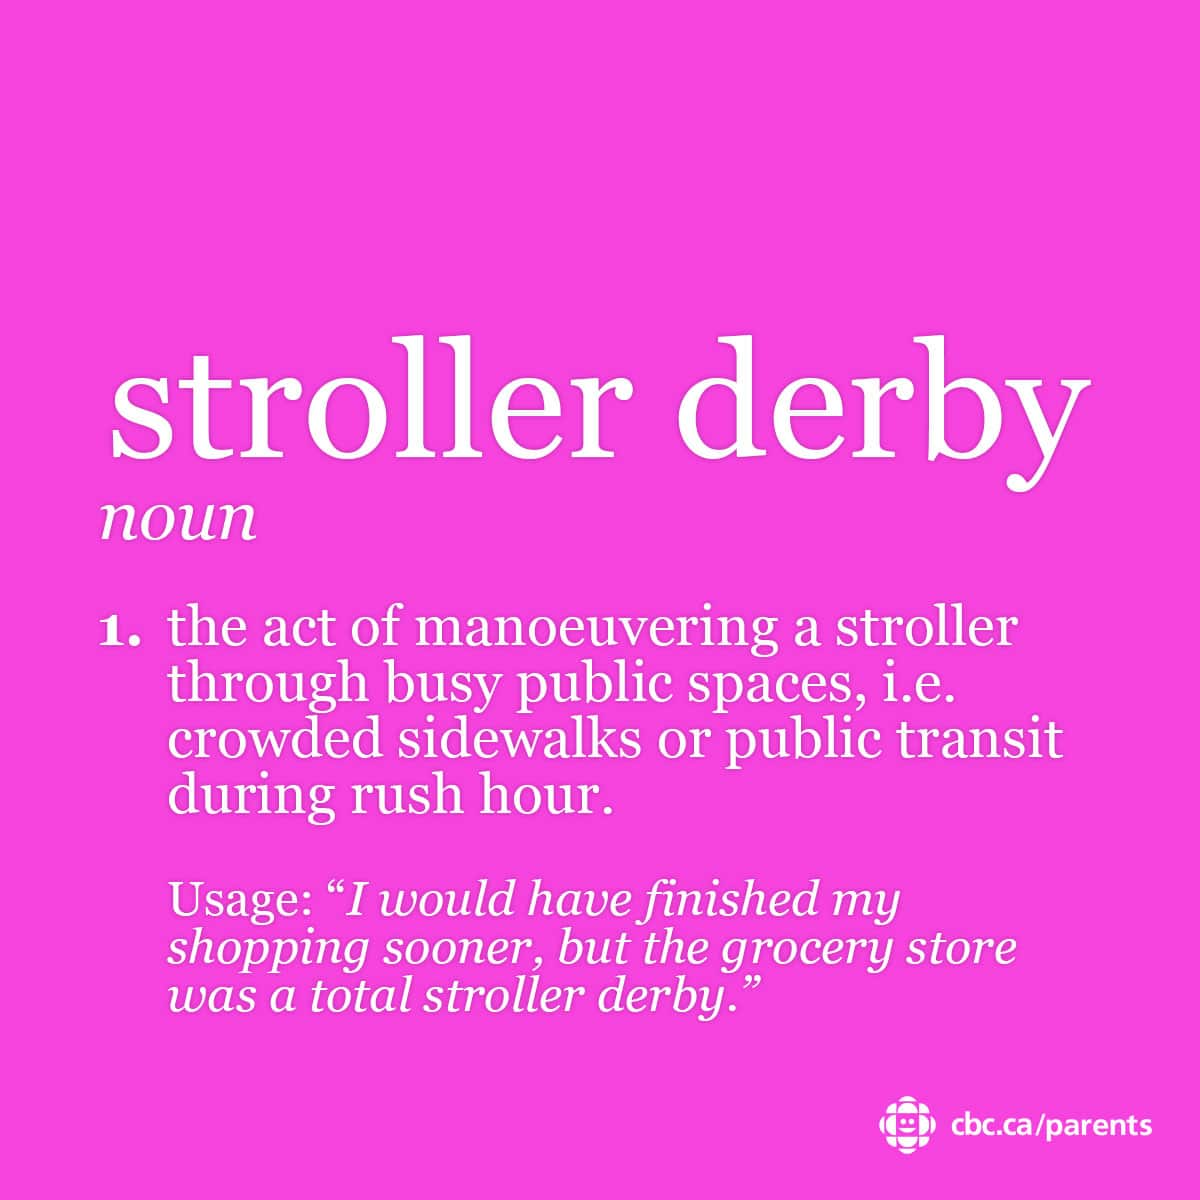 Stroller Derby: the act of manoeuvering a stroller through busy public spaces, i.e. crowded sidewalks or public transit during rush hour.